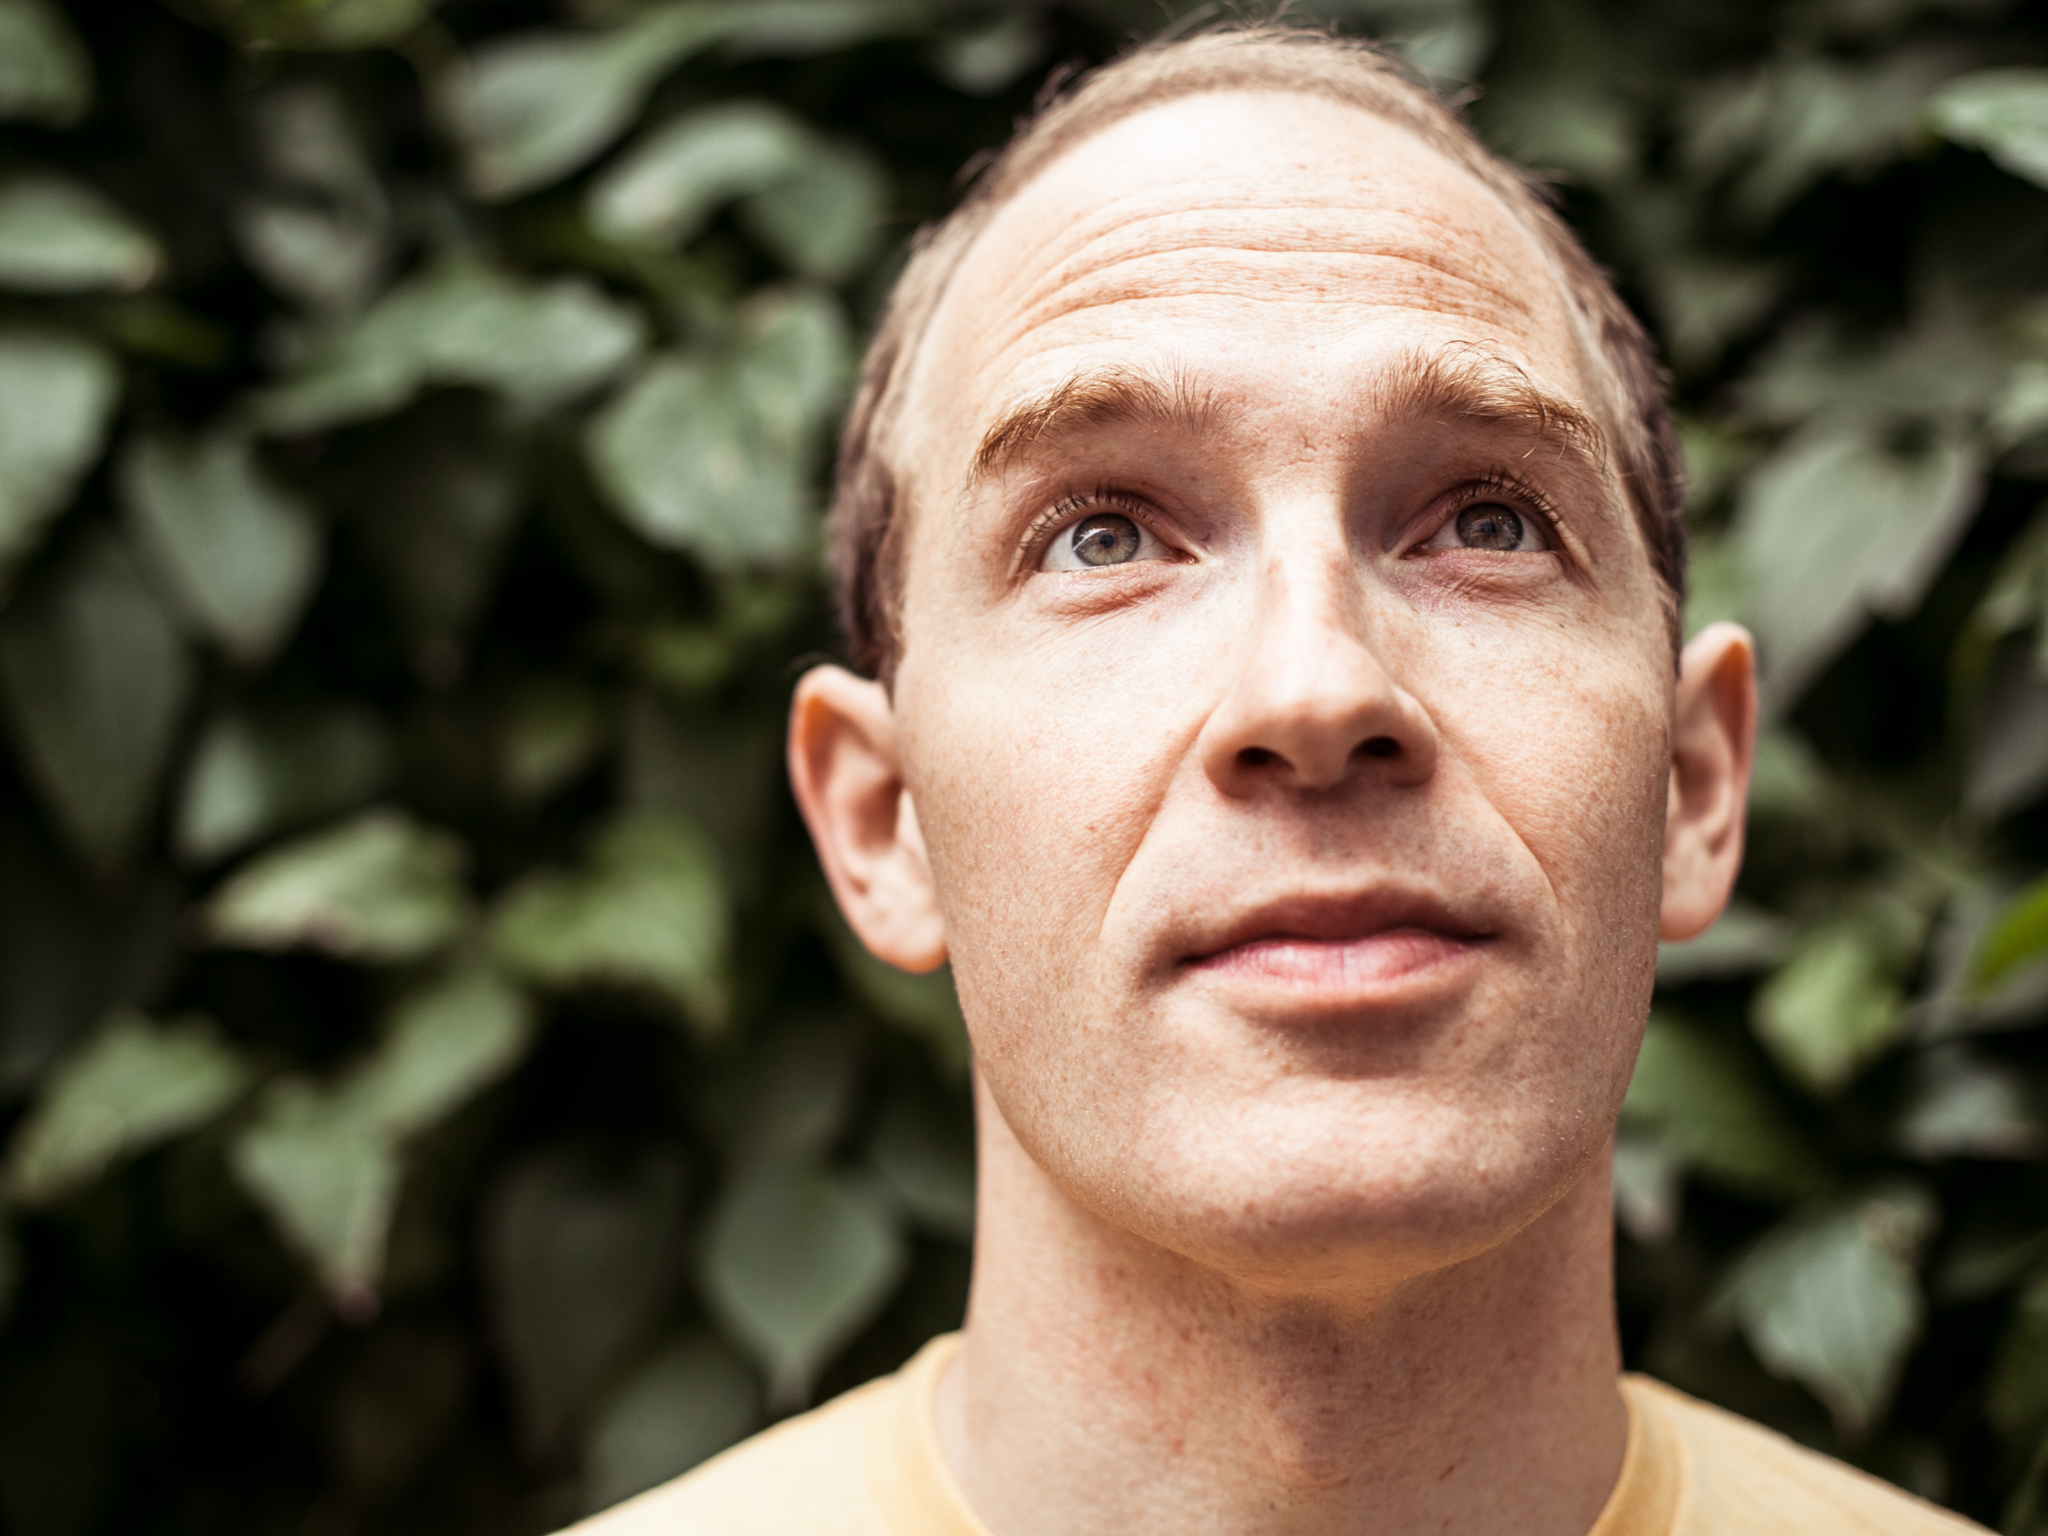 Caribou picks his top tracks from 'The Longest Mixtape'